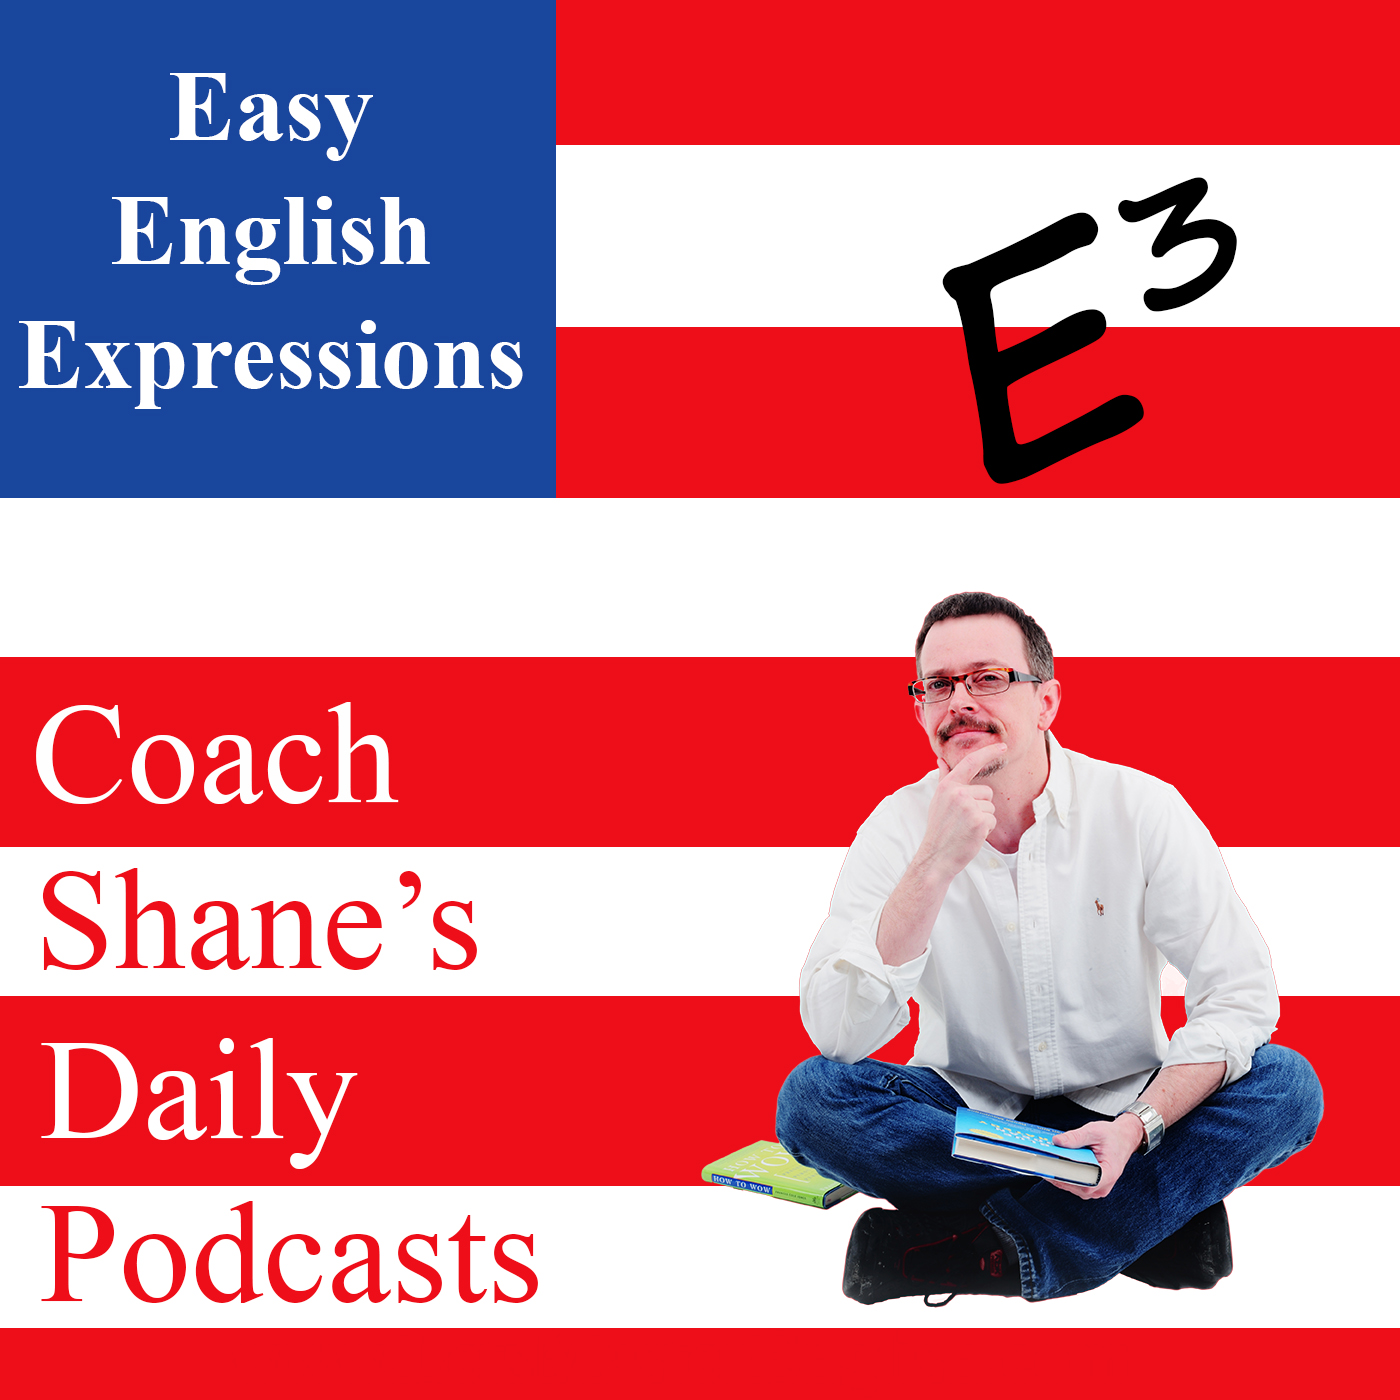 85 Daily Easy English Expression PODCAST— ~ is it!